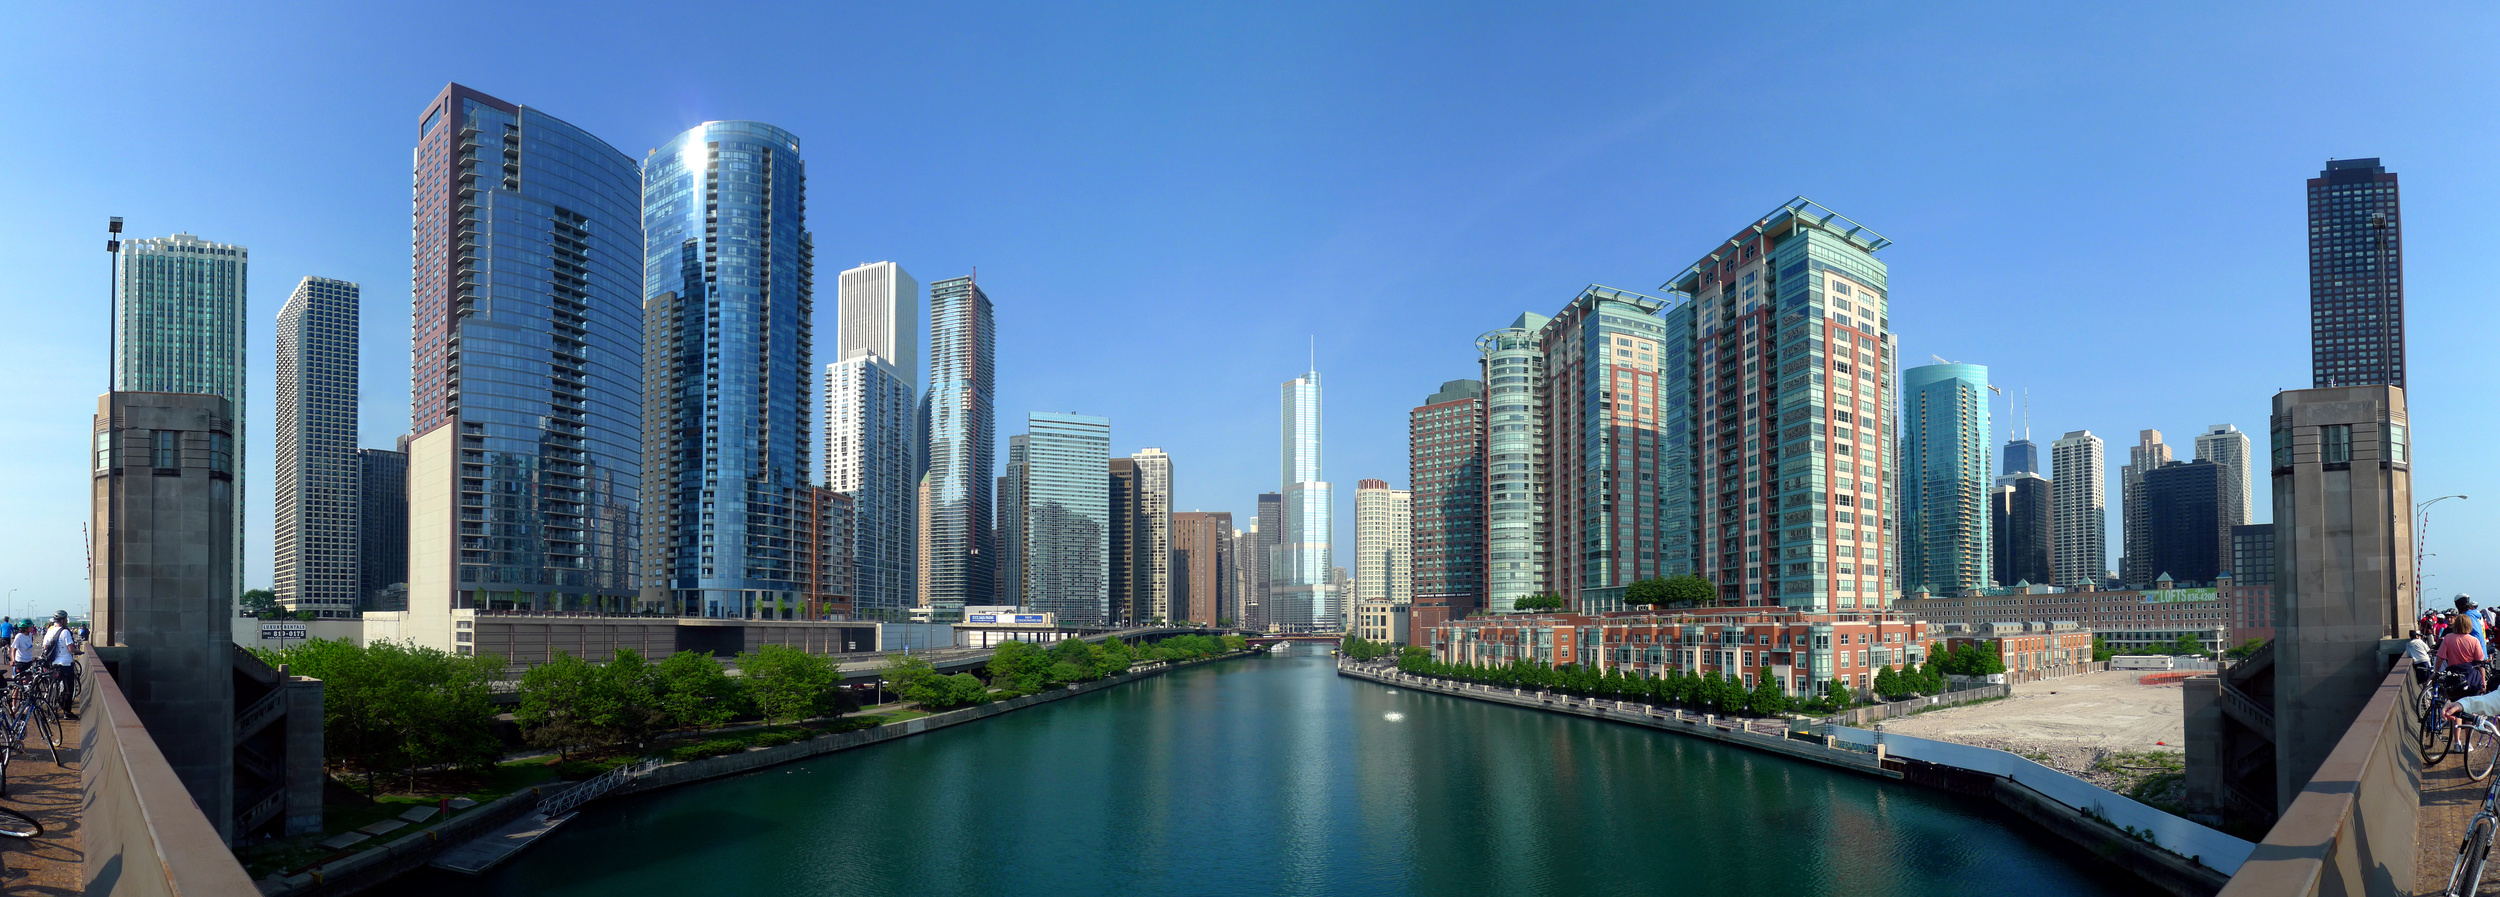 Chicago River, North Shore Drive, Photo by David B. Gleason